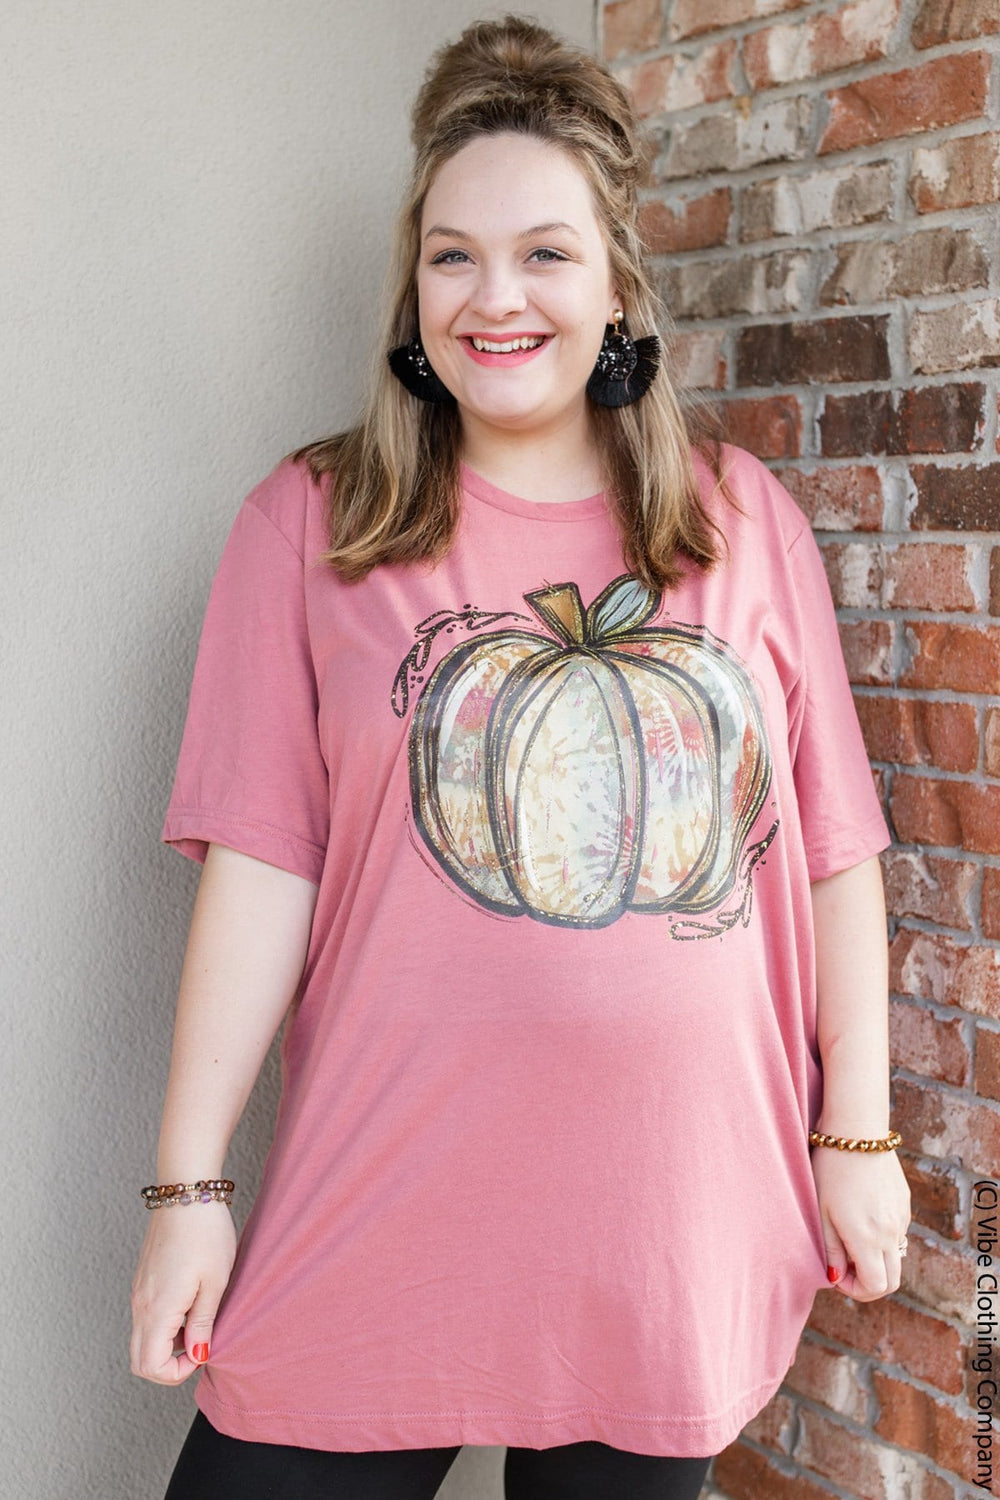 Floral Pumpkin Graphic Tee graphic tees Mark tee